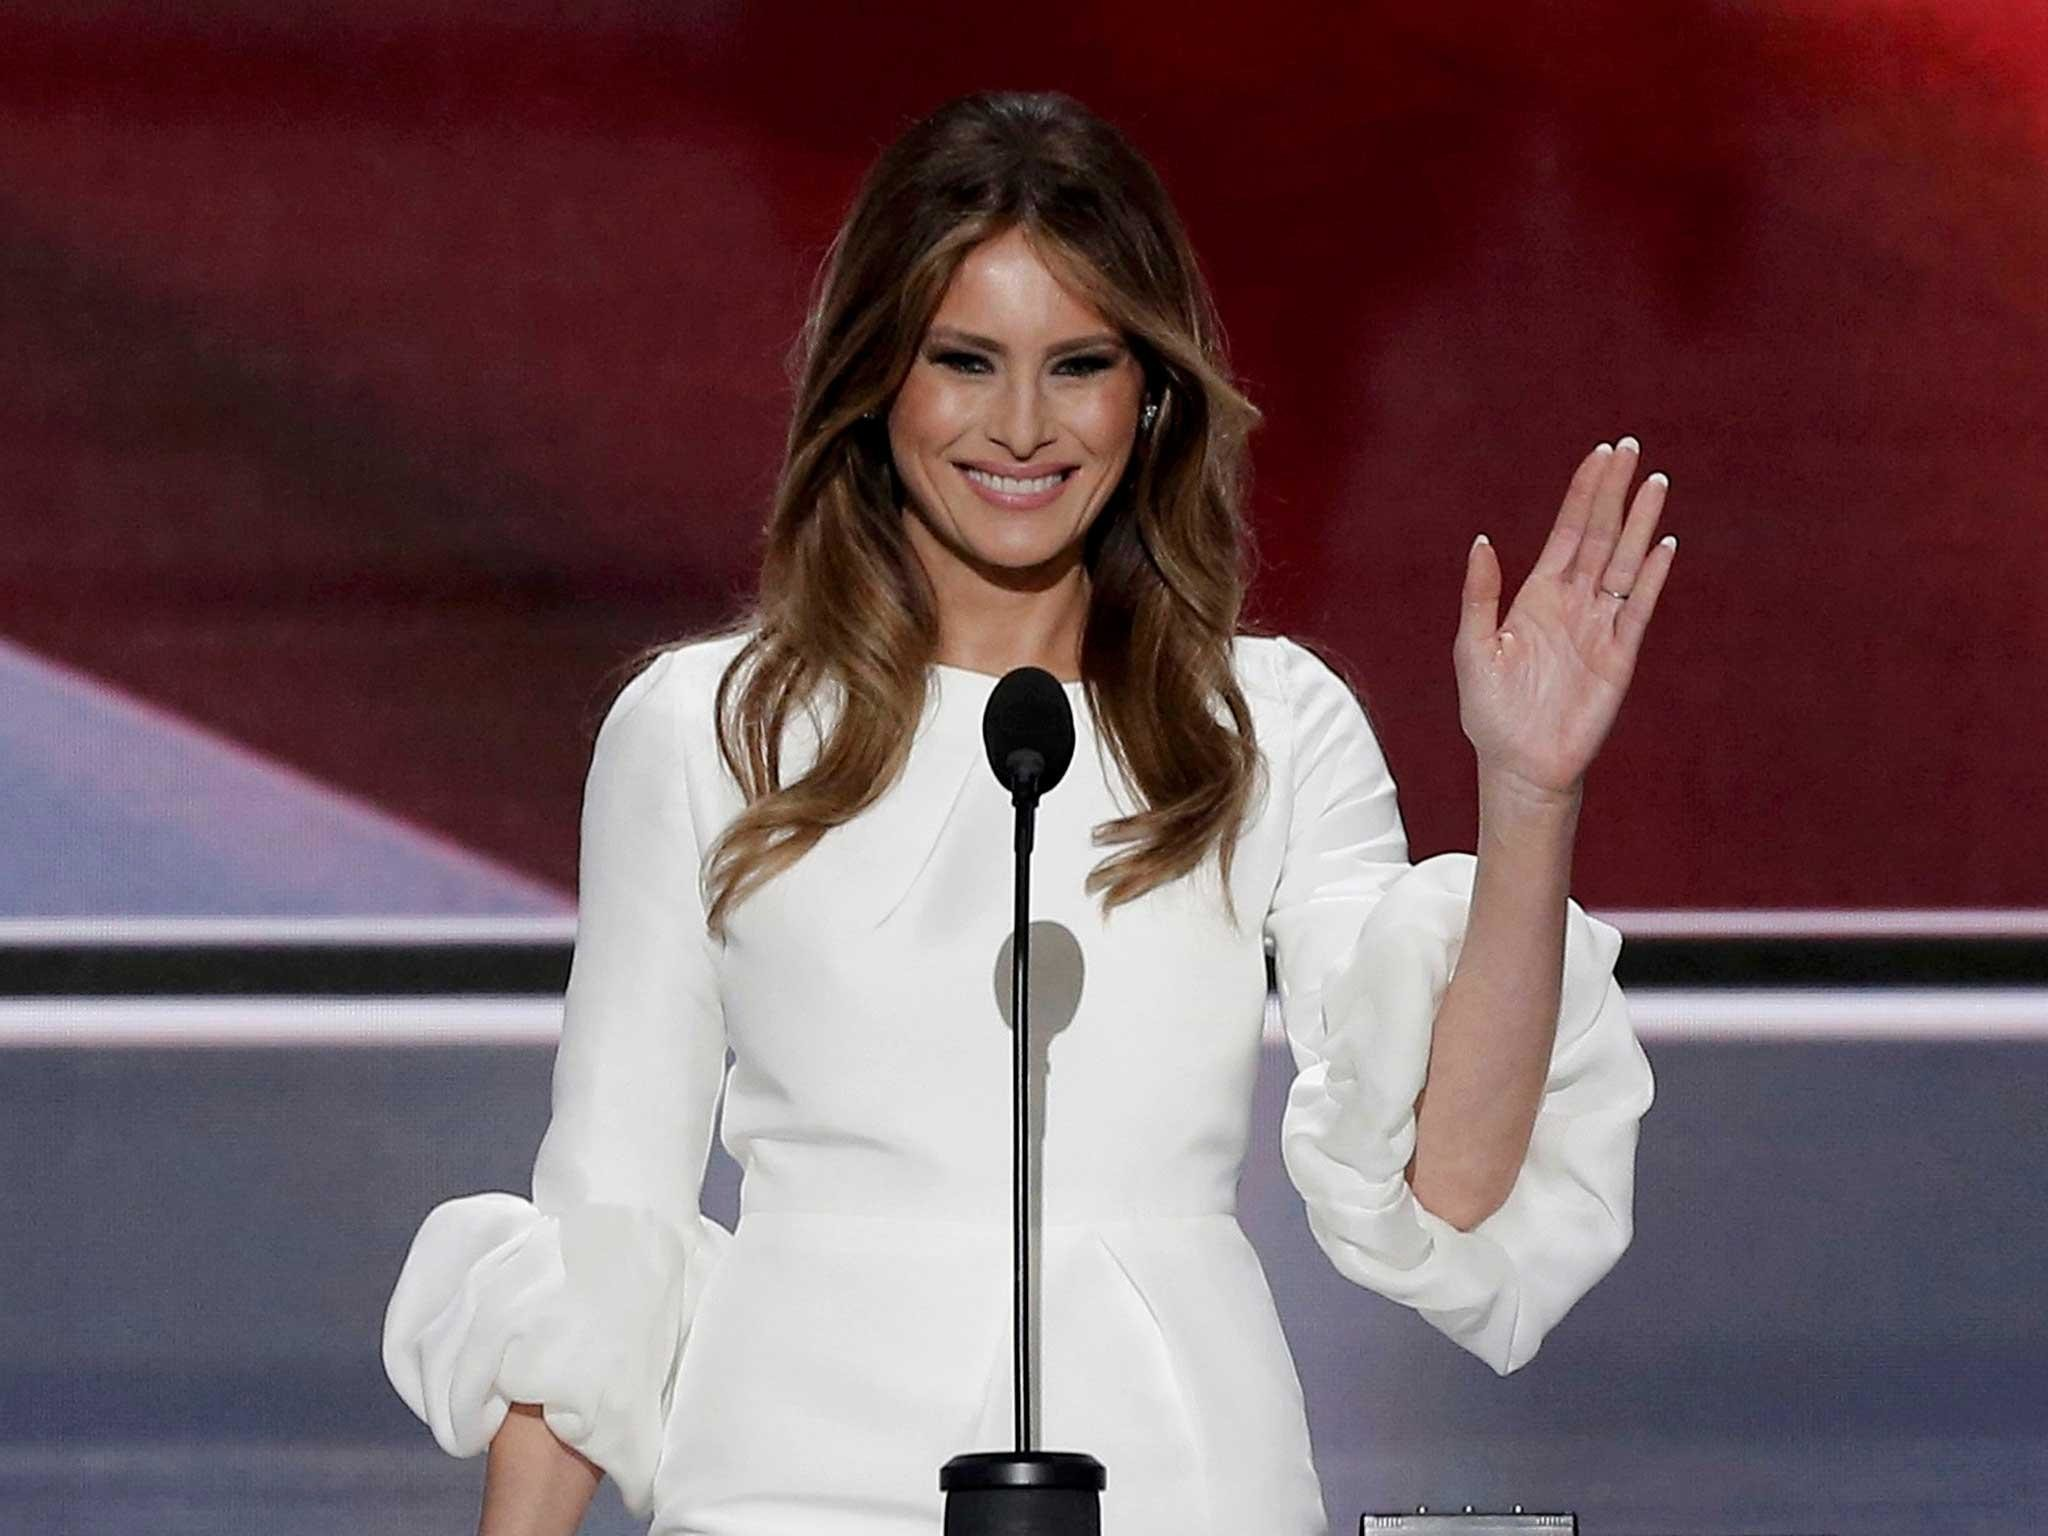 Melania Trump's website: Nothing to see here, says Donald Trump's wife    The Independent